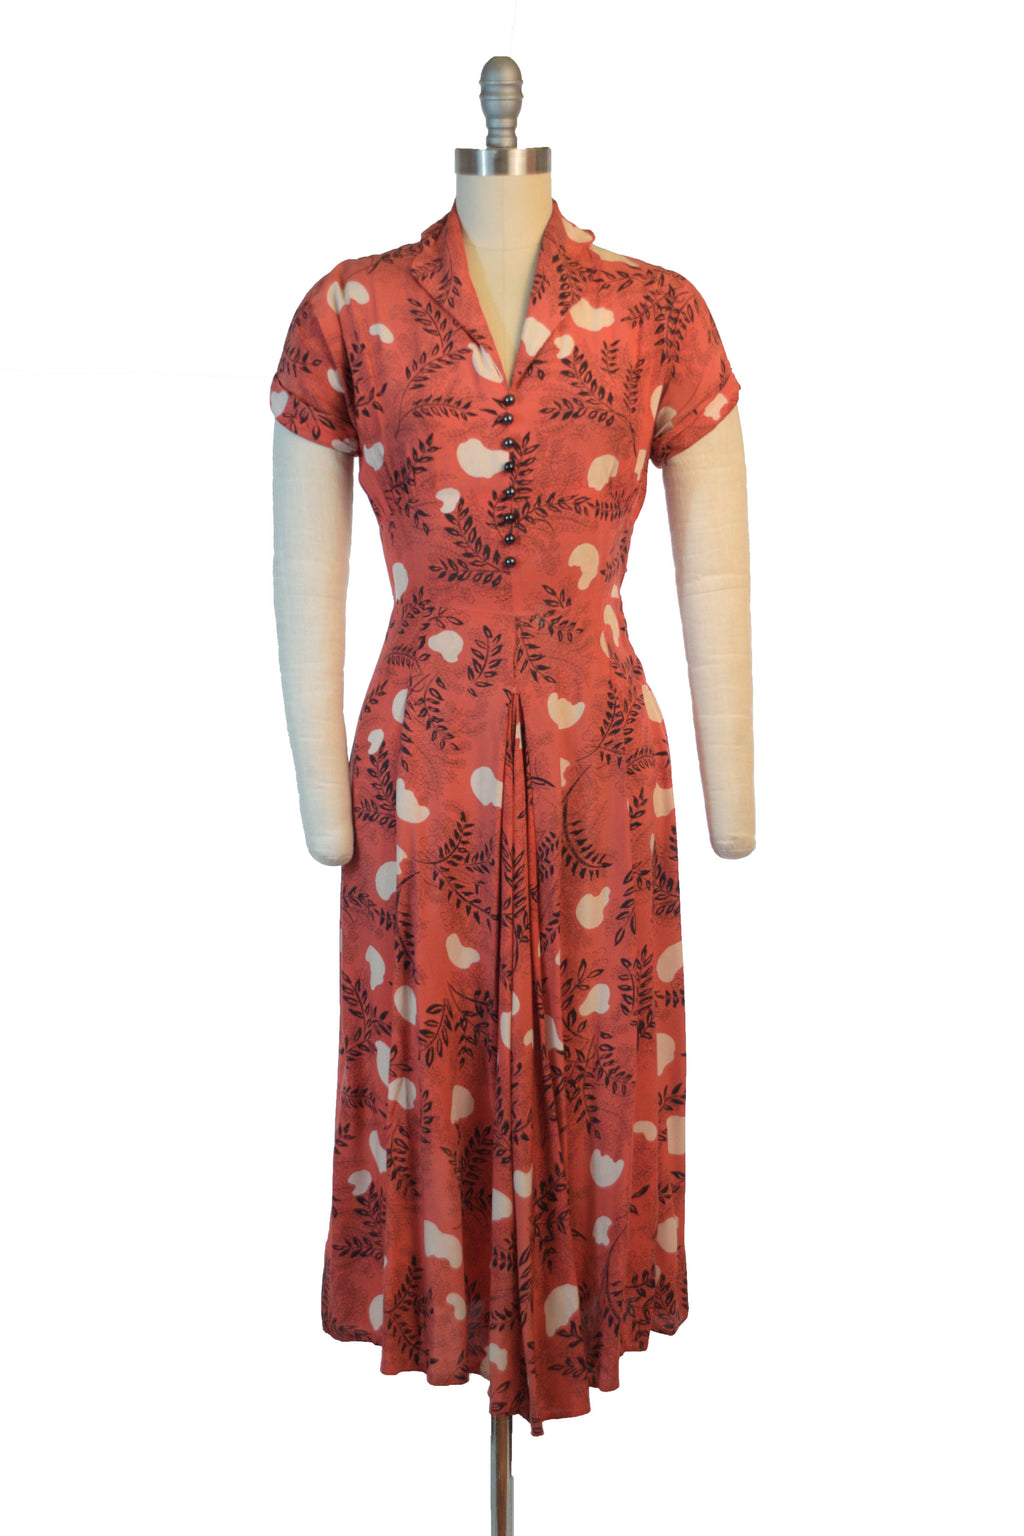 Smart 1950s Coral Day Dress with Fern Frond Print As Is